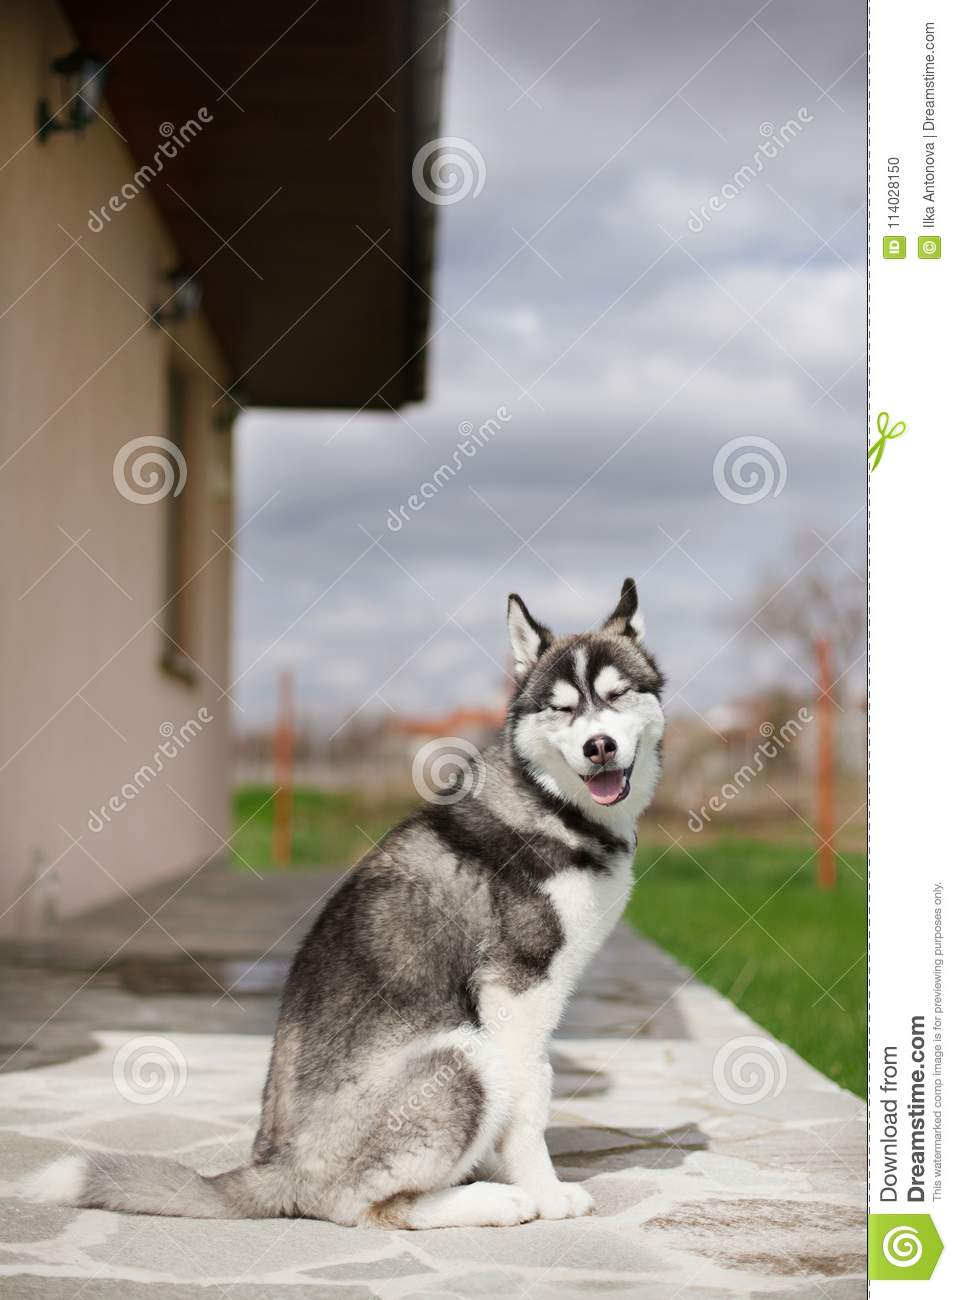 Smiling Puppy Husky Stock Photo Image Of Puppy Tail 114028150